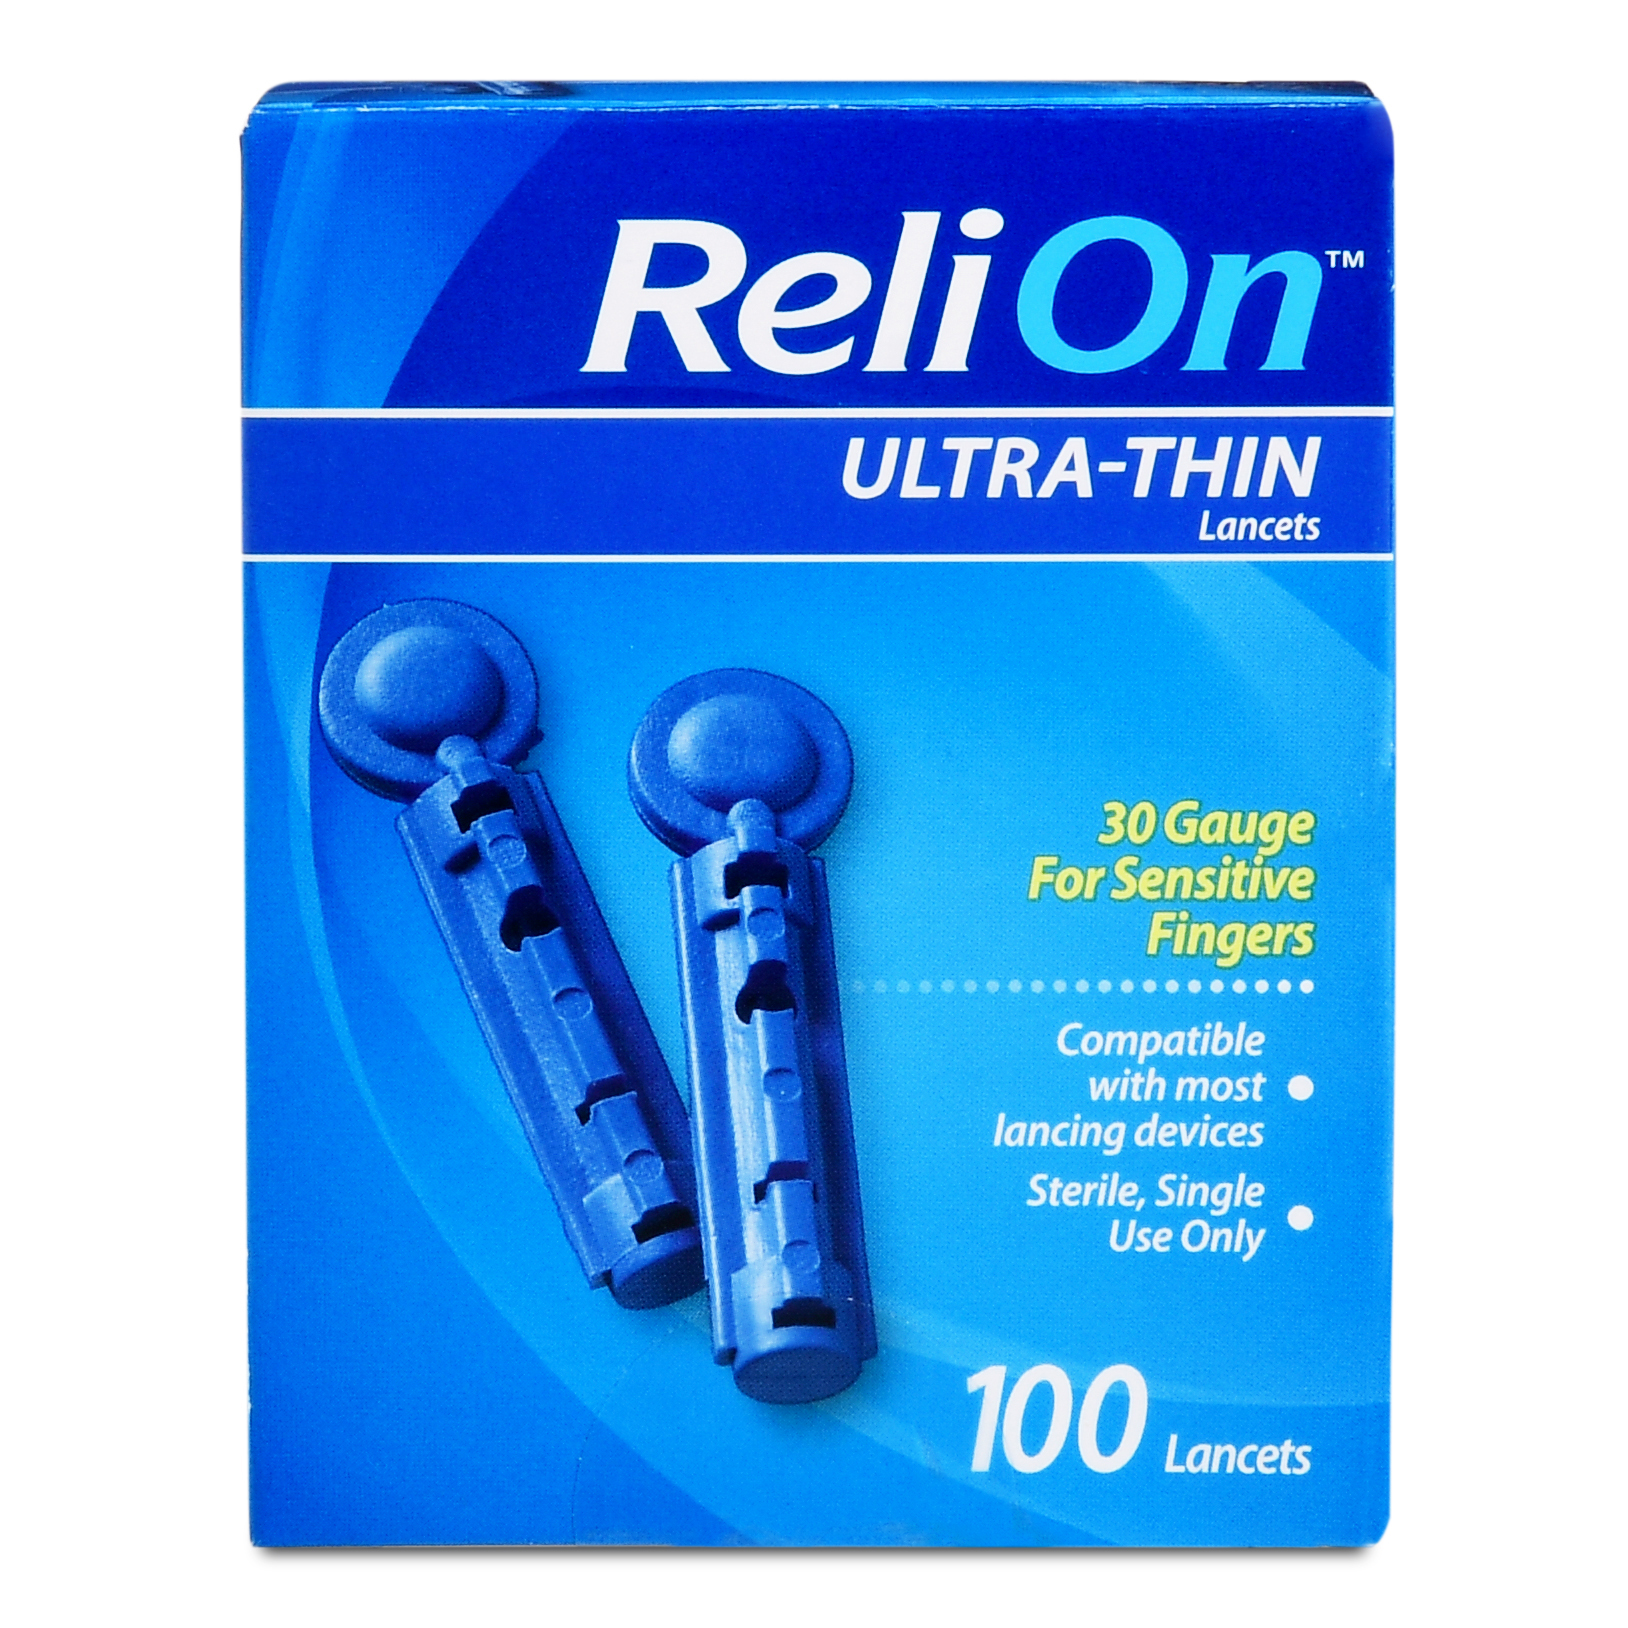 ReliOn 30 Gauge Ultra Thin Lancets, 100 Ct